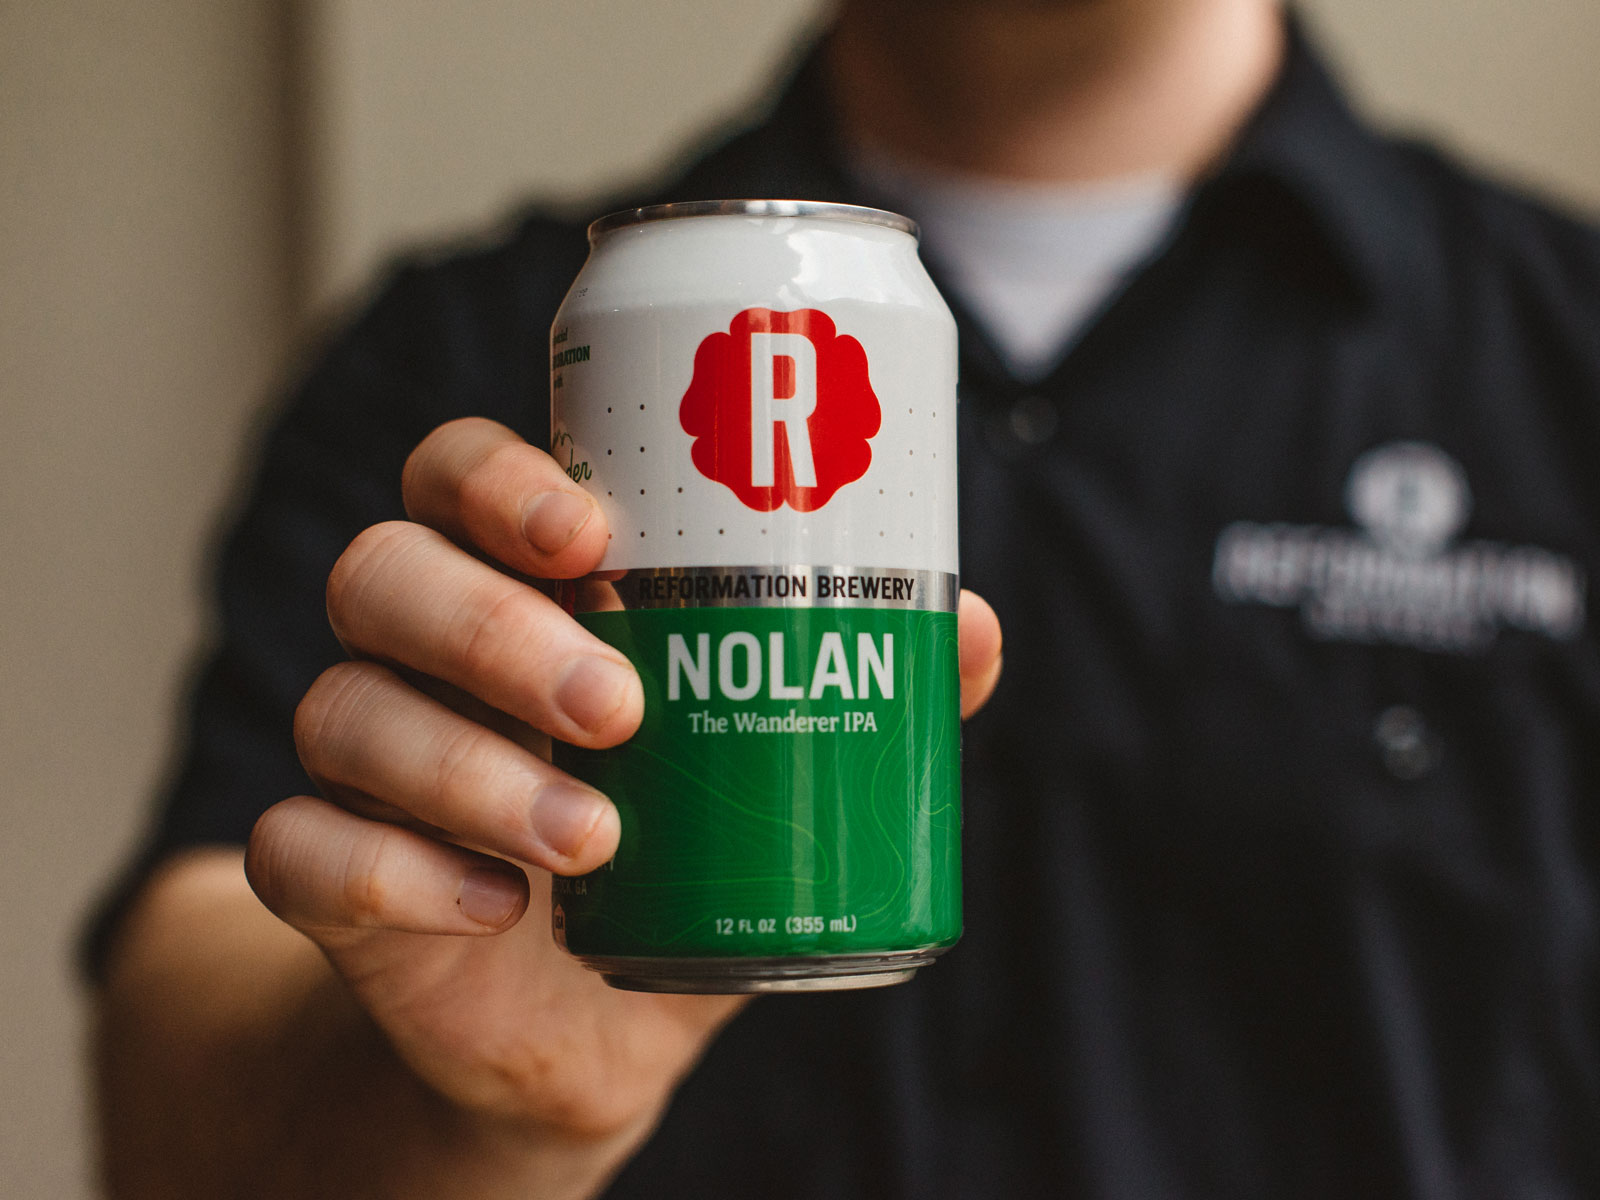 Reformation Brewing - Nolan Brut IPA